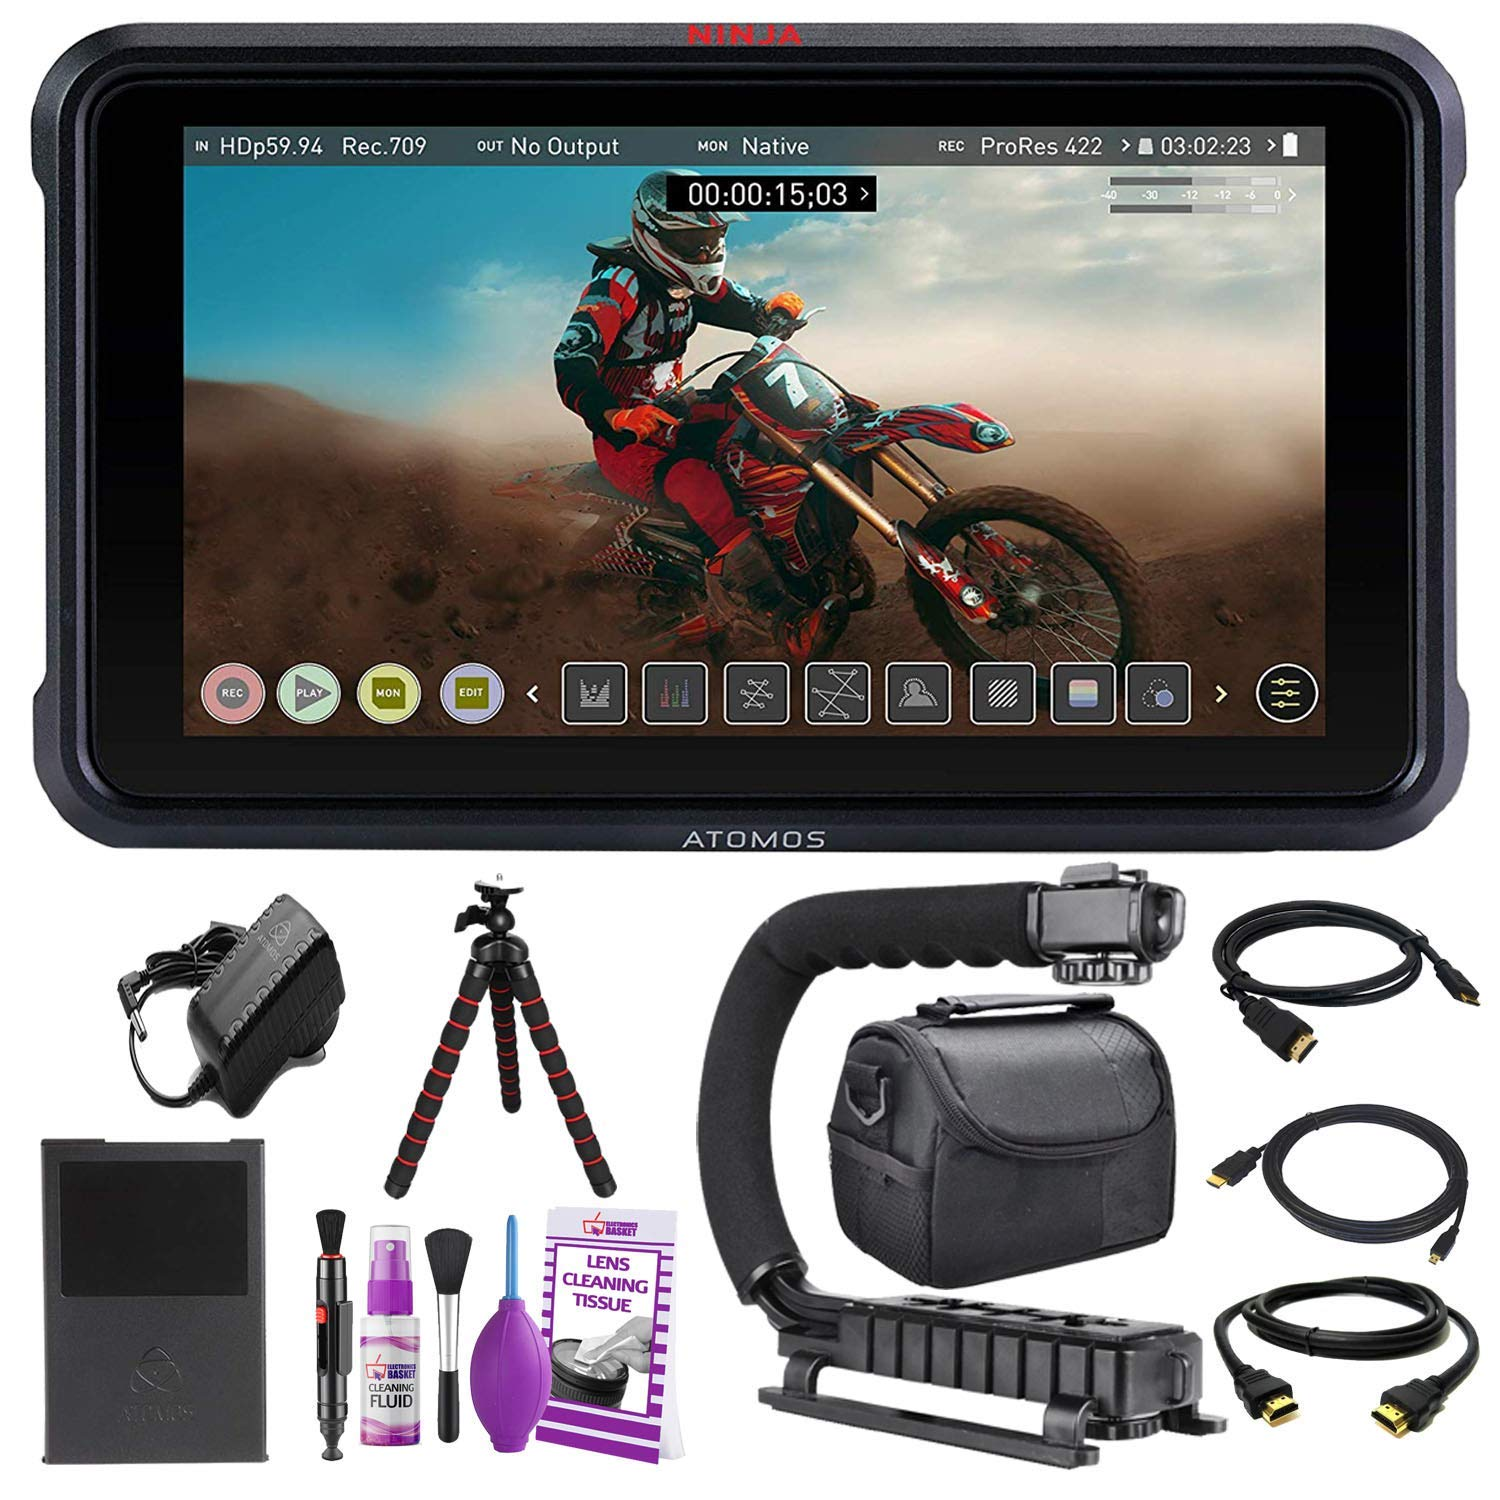 """Atomos Ninja V 5"""" Inch 4K HDMI Recording Monitor Basic Accessory Bundle with Protective Case + Tripod + Cleaning Kit + HDMI Cables + More"""